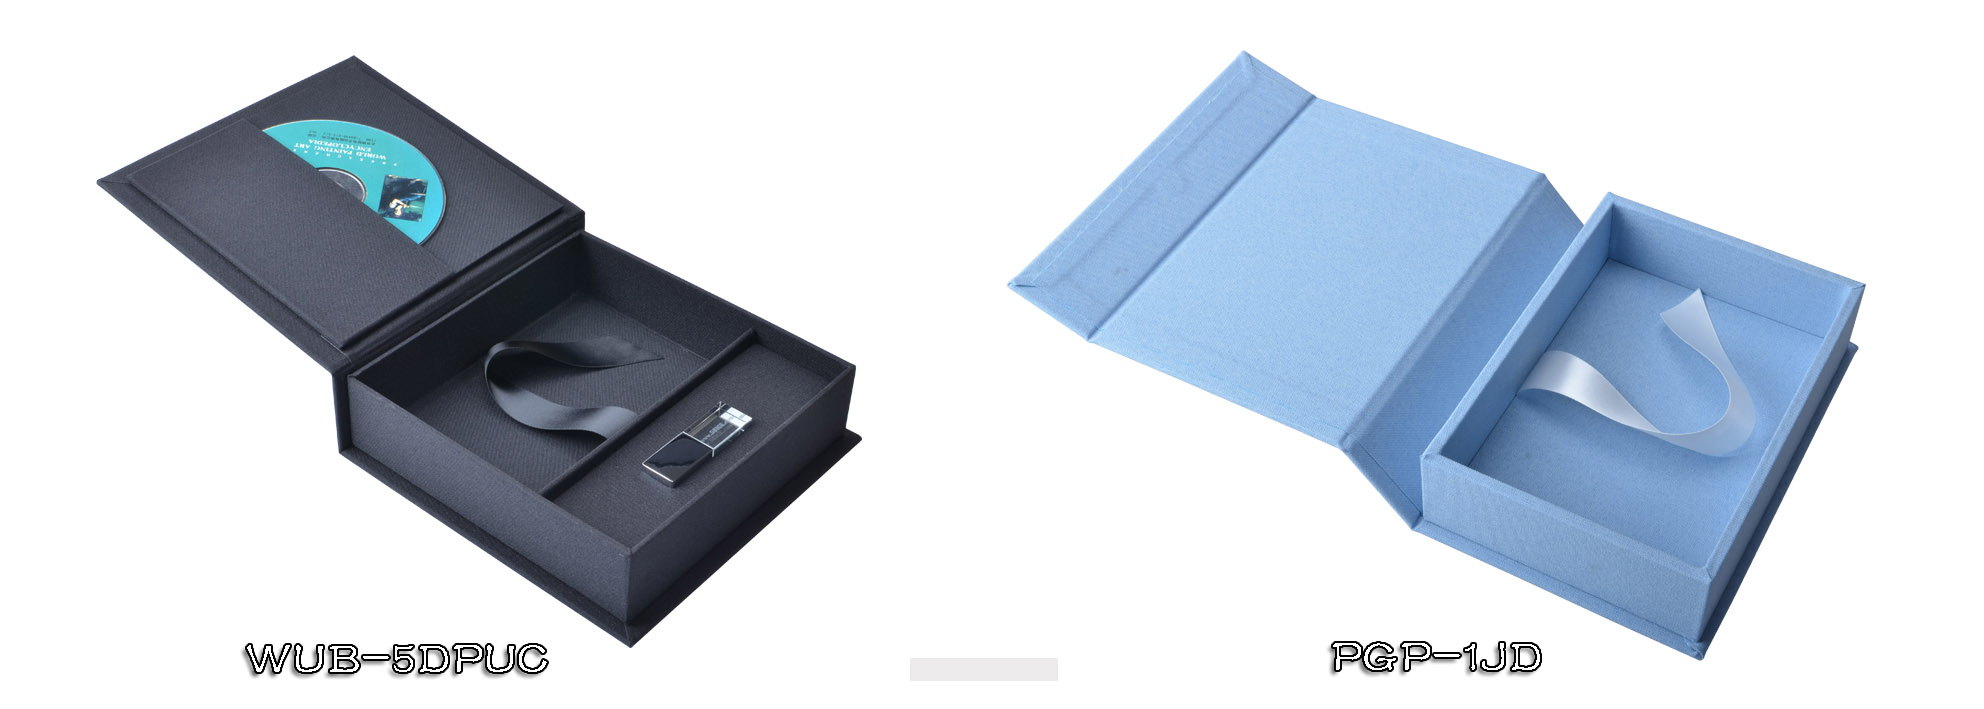 Linen DVD Photo Prints USB Stick Packaging Box